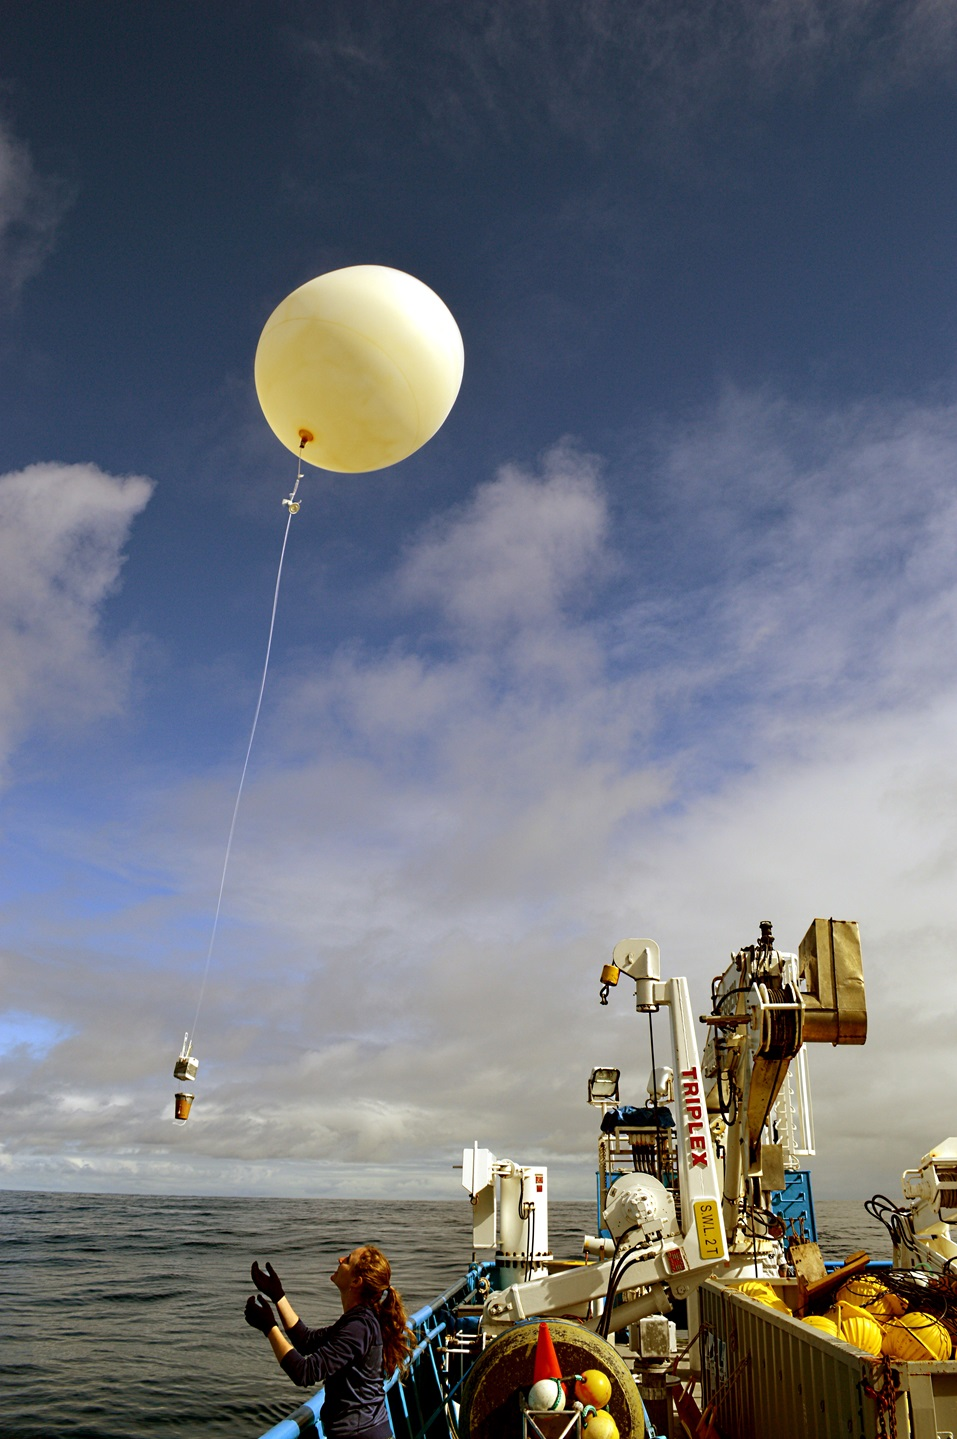 A women lets go of a weather balloon from on the deck.